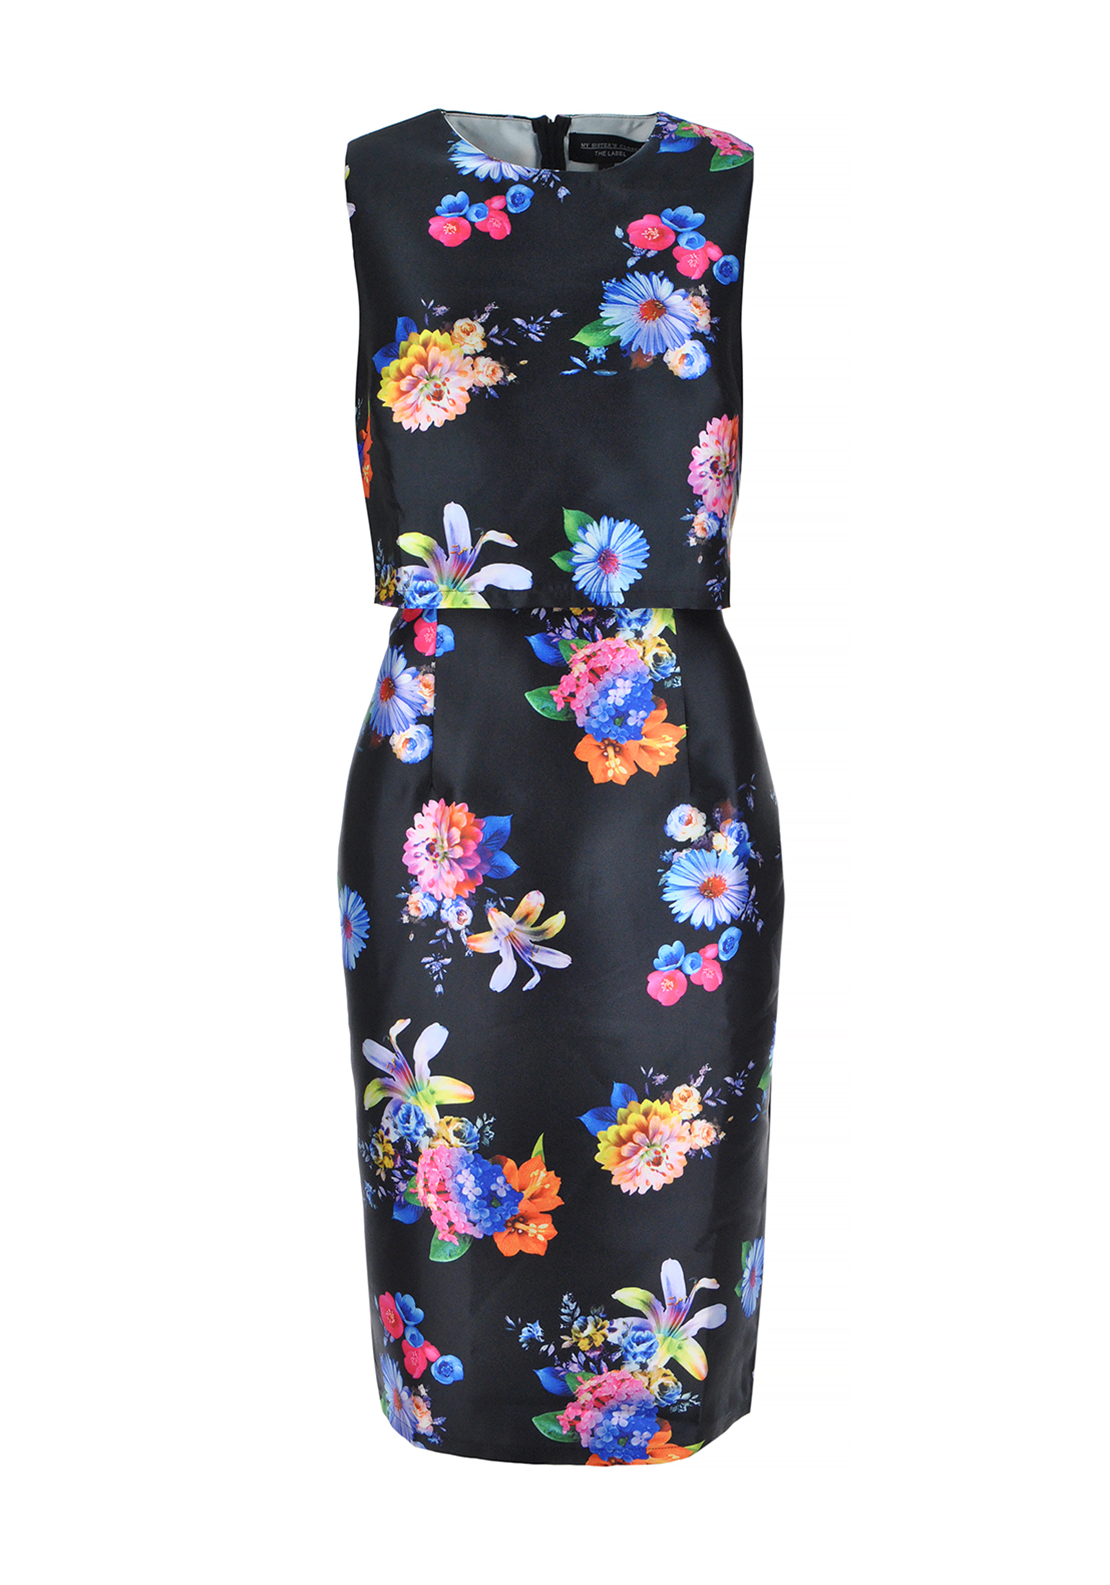 My Sister's Closet Alice Floral Print Satin Overlay Dress, Black